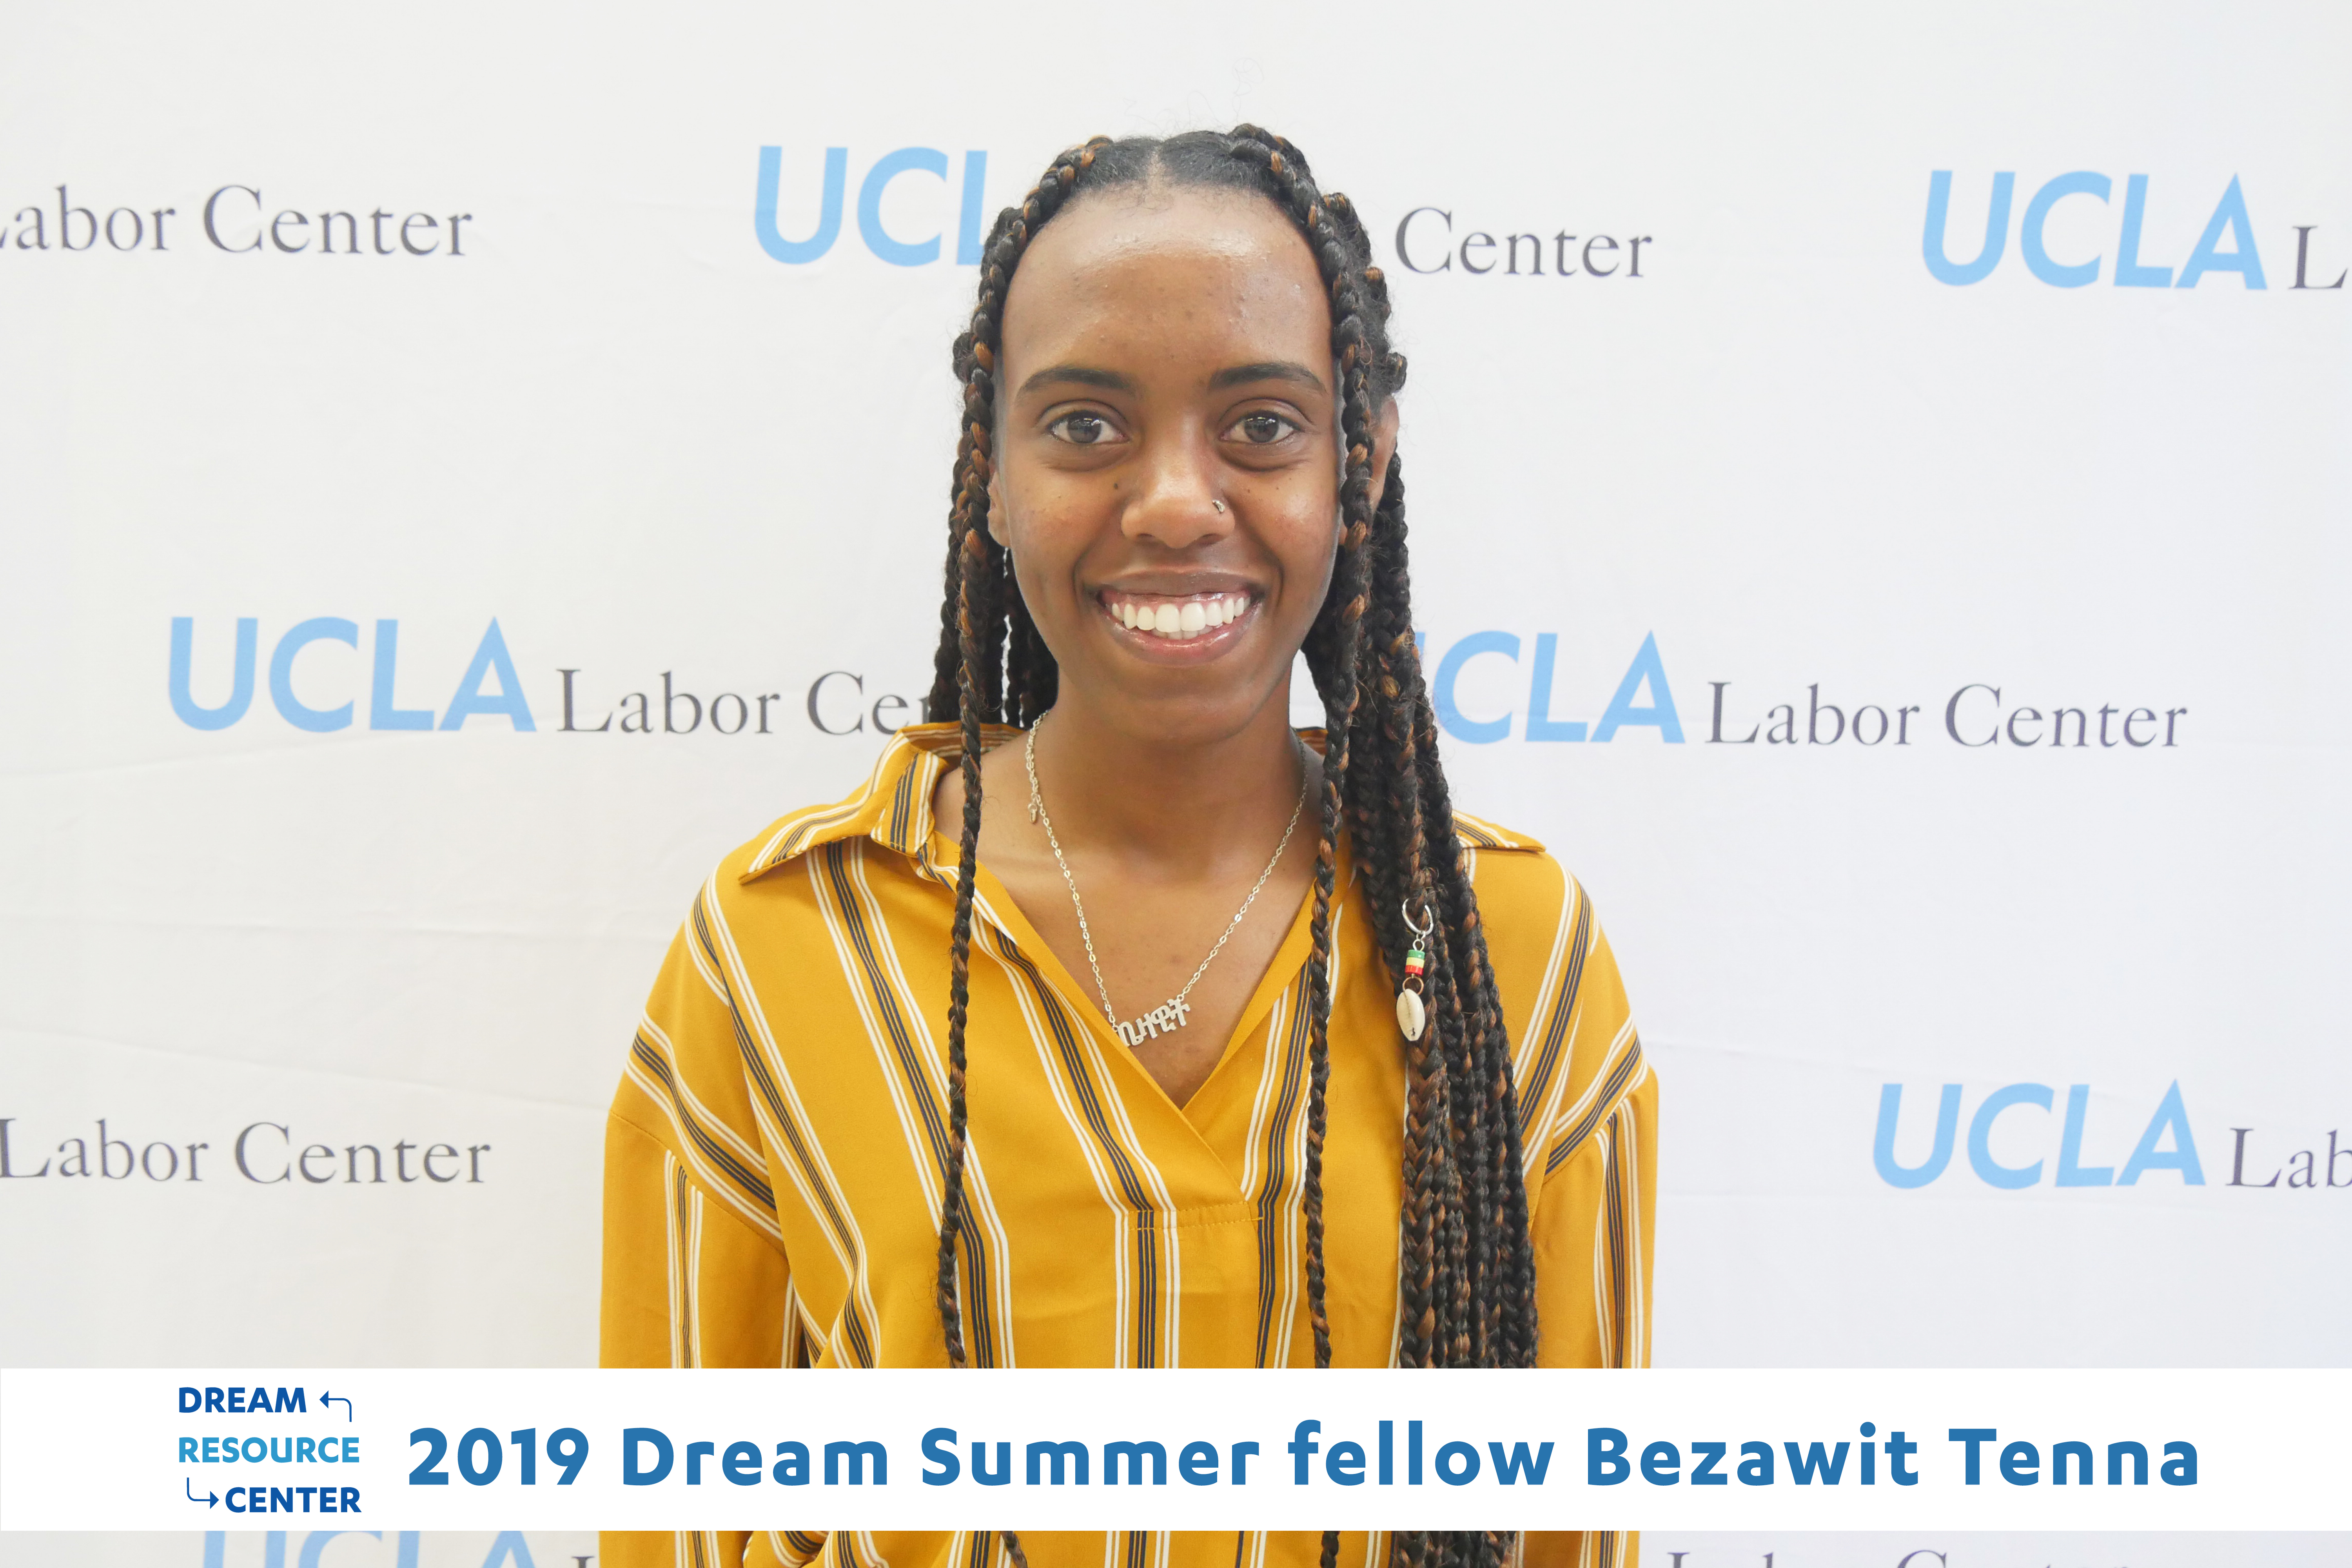 Meet Dream Summer 2019 Graduate, Bezawit Tenna